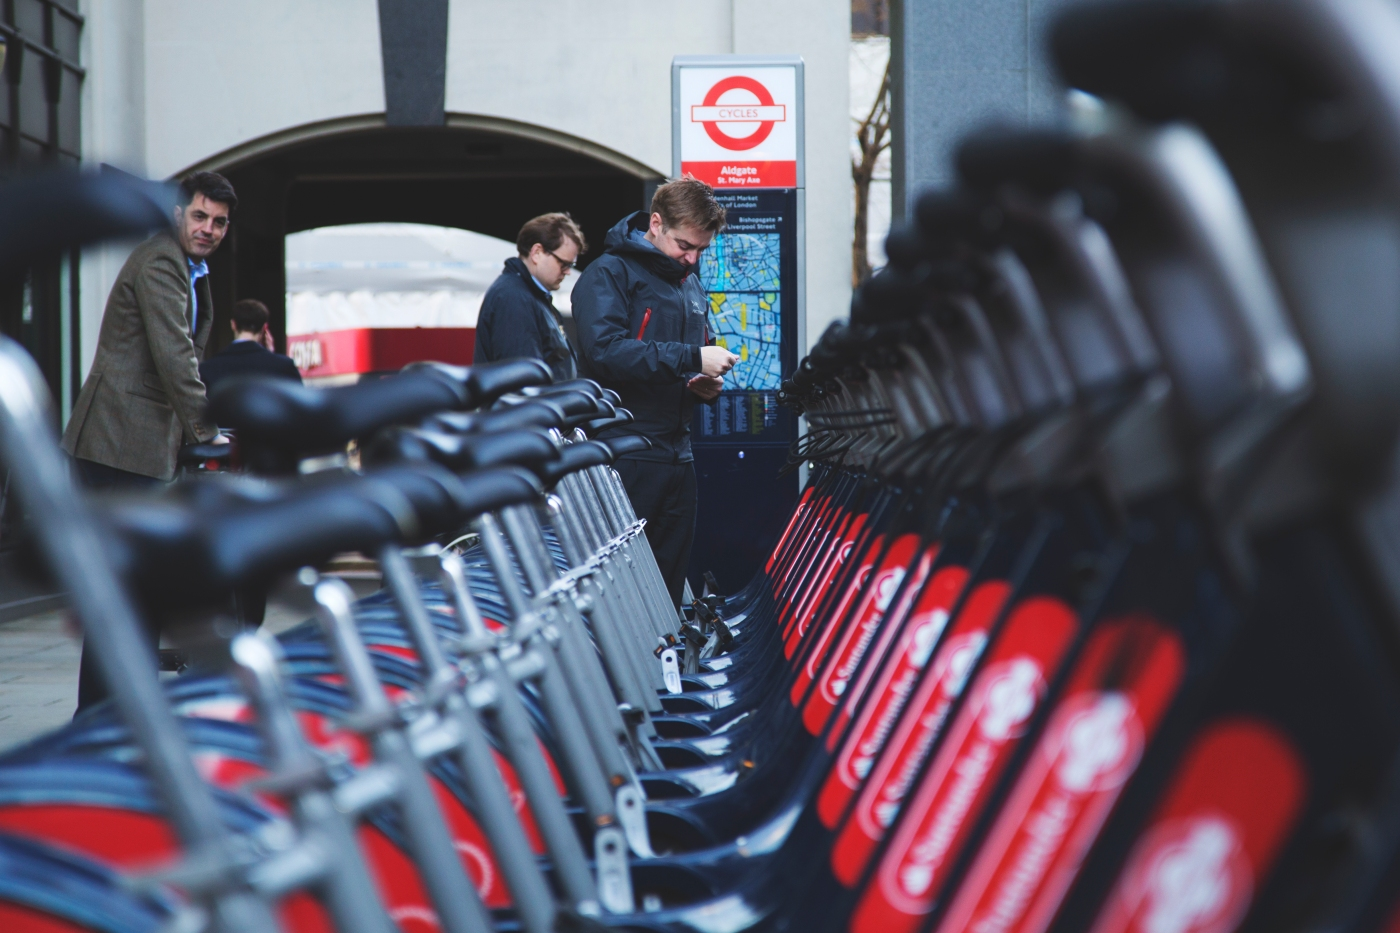 SACO Guide to pubich transport from Cannon Street